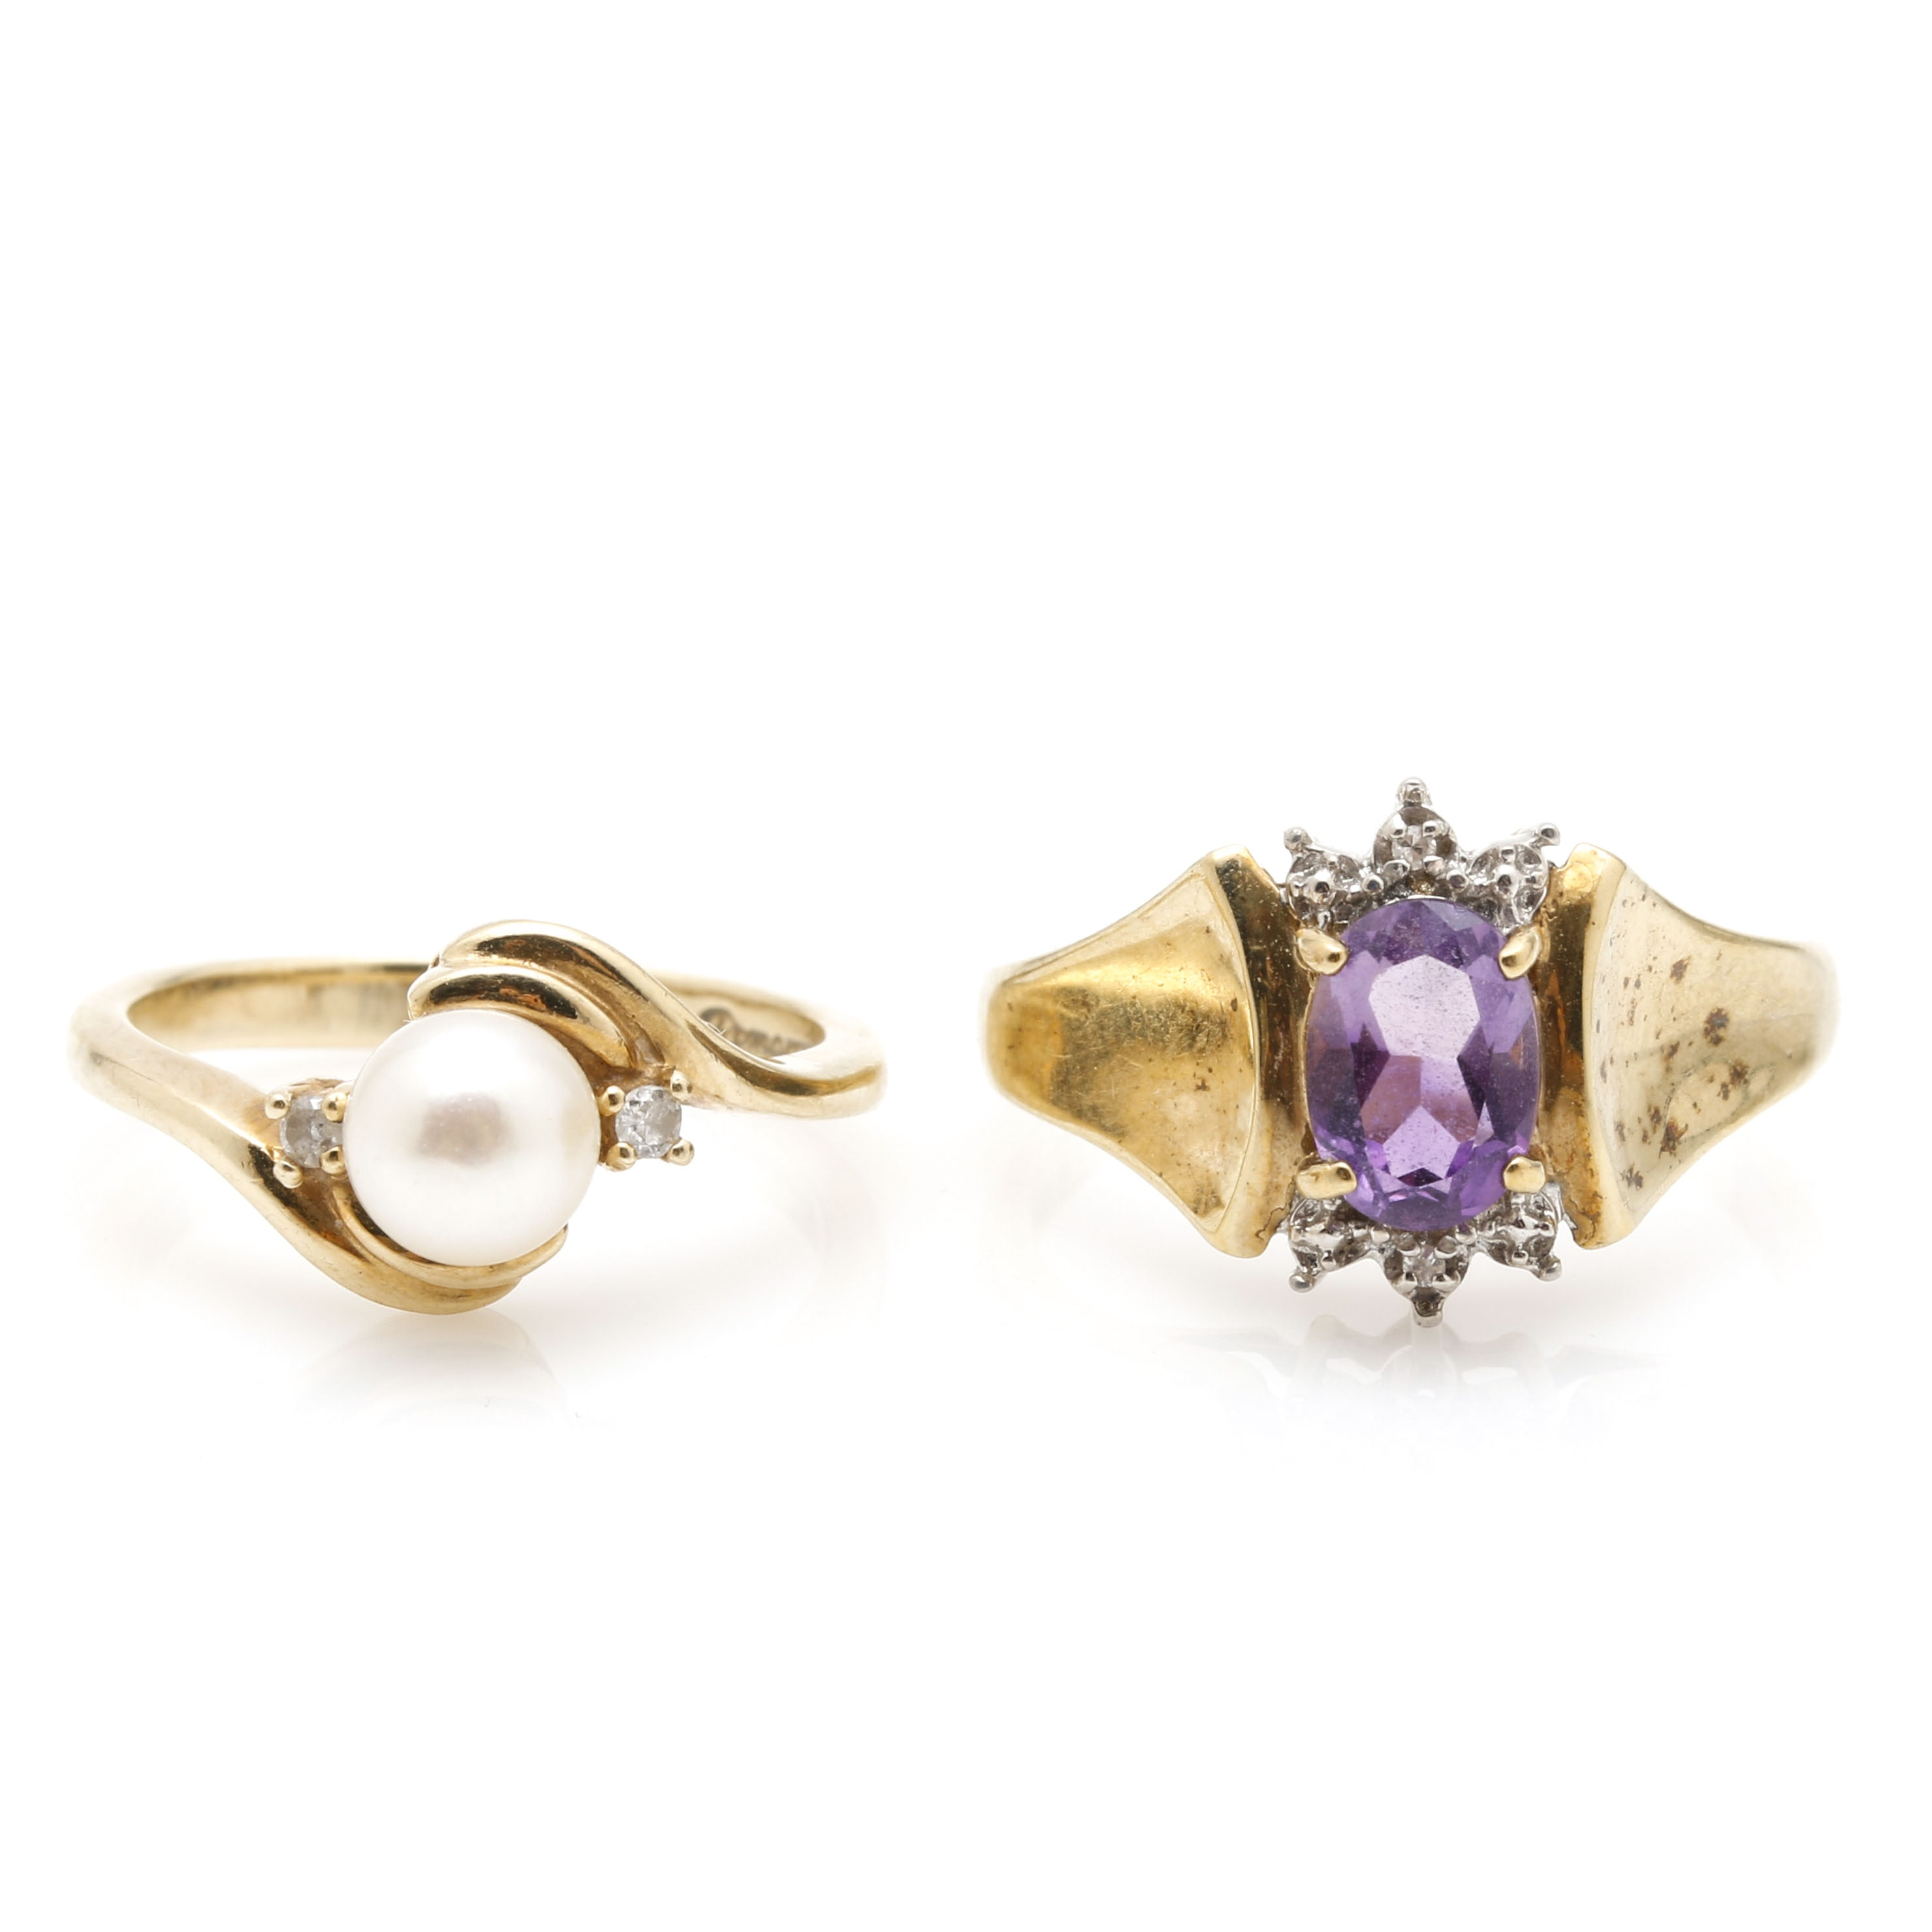 Pair of 10K Yellow Gold Rings Featuring Diamonds, Amethyst, and Cultured Pearl